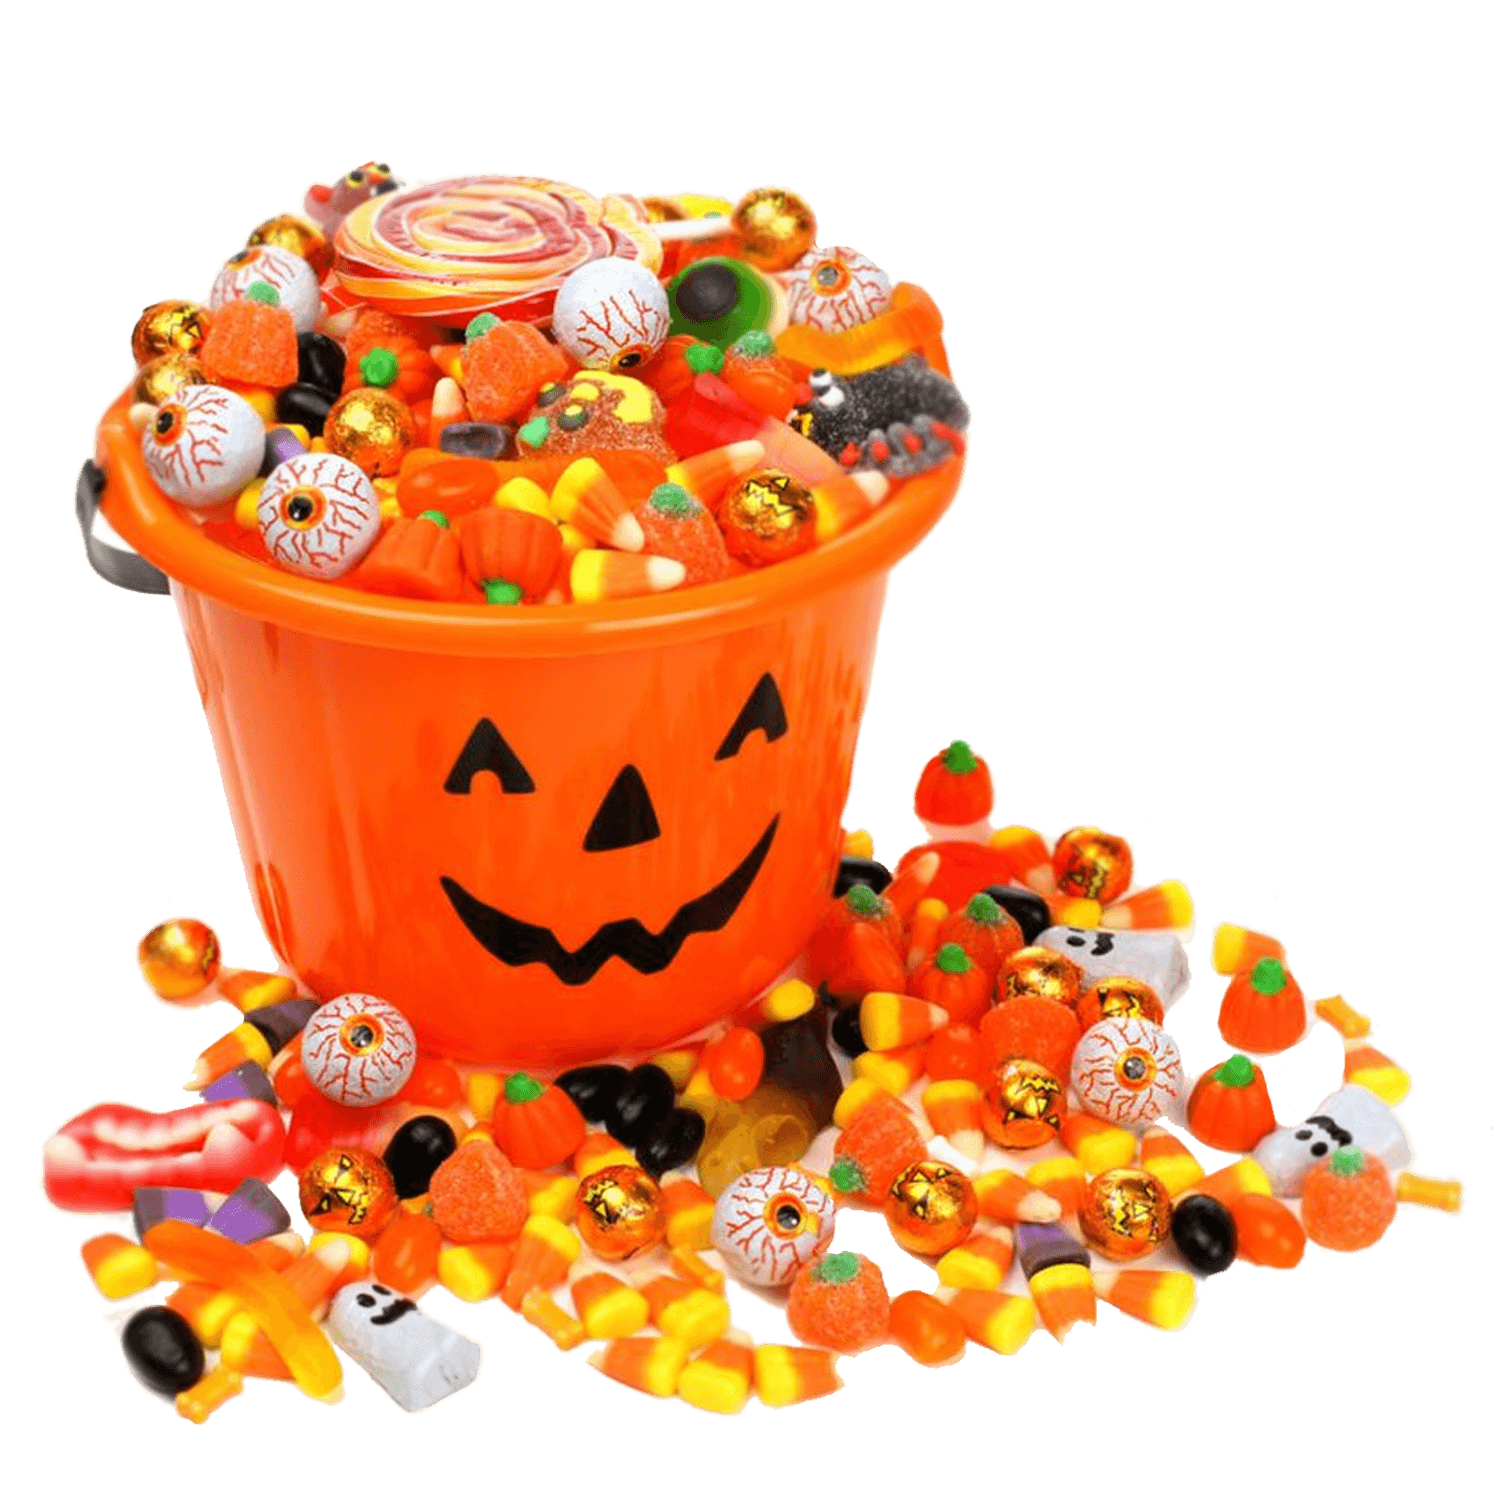 Sprinkles clipart candy. Candies halloween transparent png